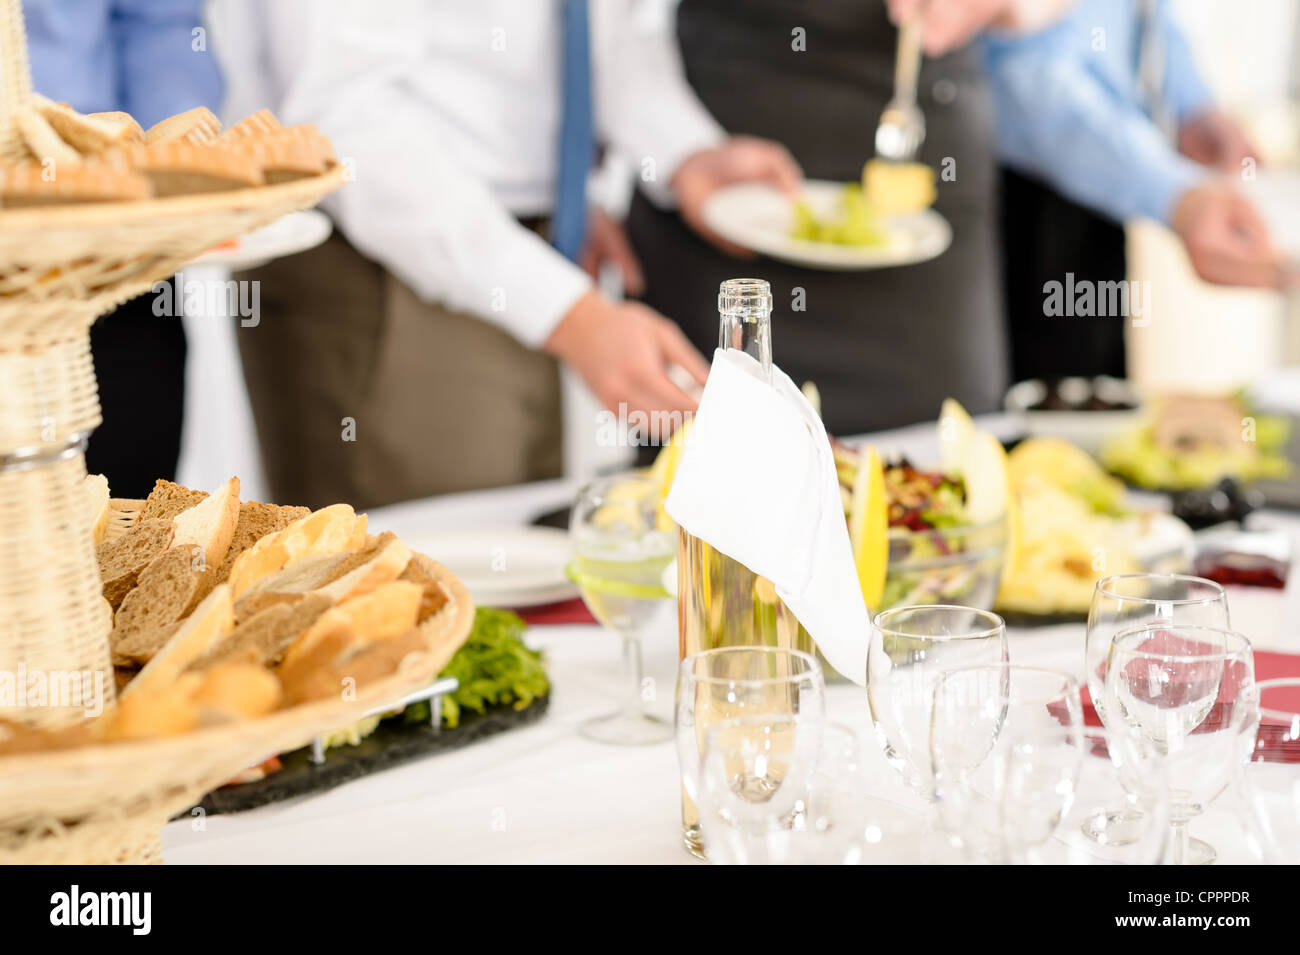 Business catering people serving themselves buffet at company meeting - Stock Image